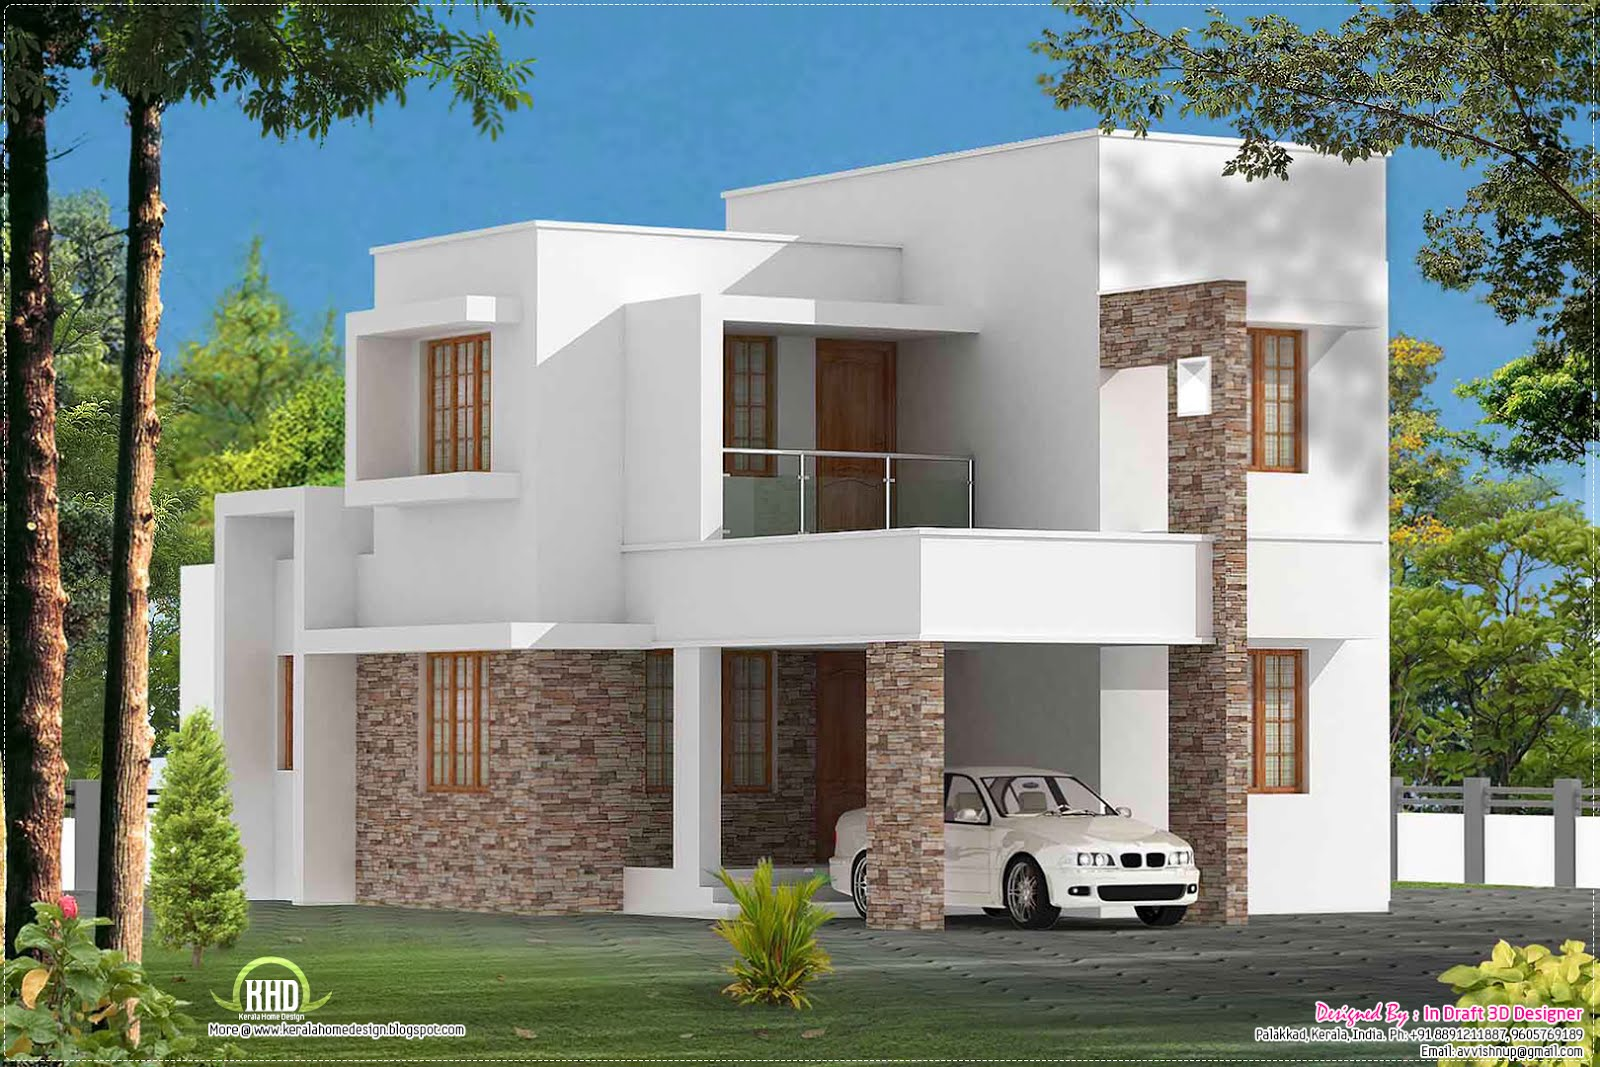 Simple 3 bed room contemporary villa kerala home design for Contemporary villa plans